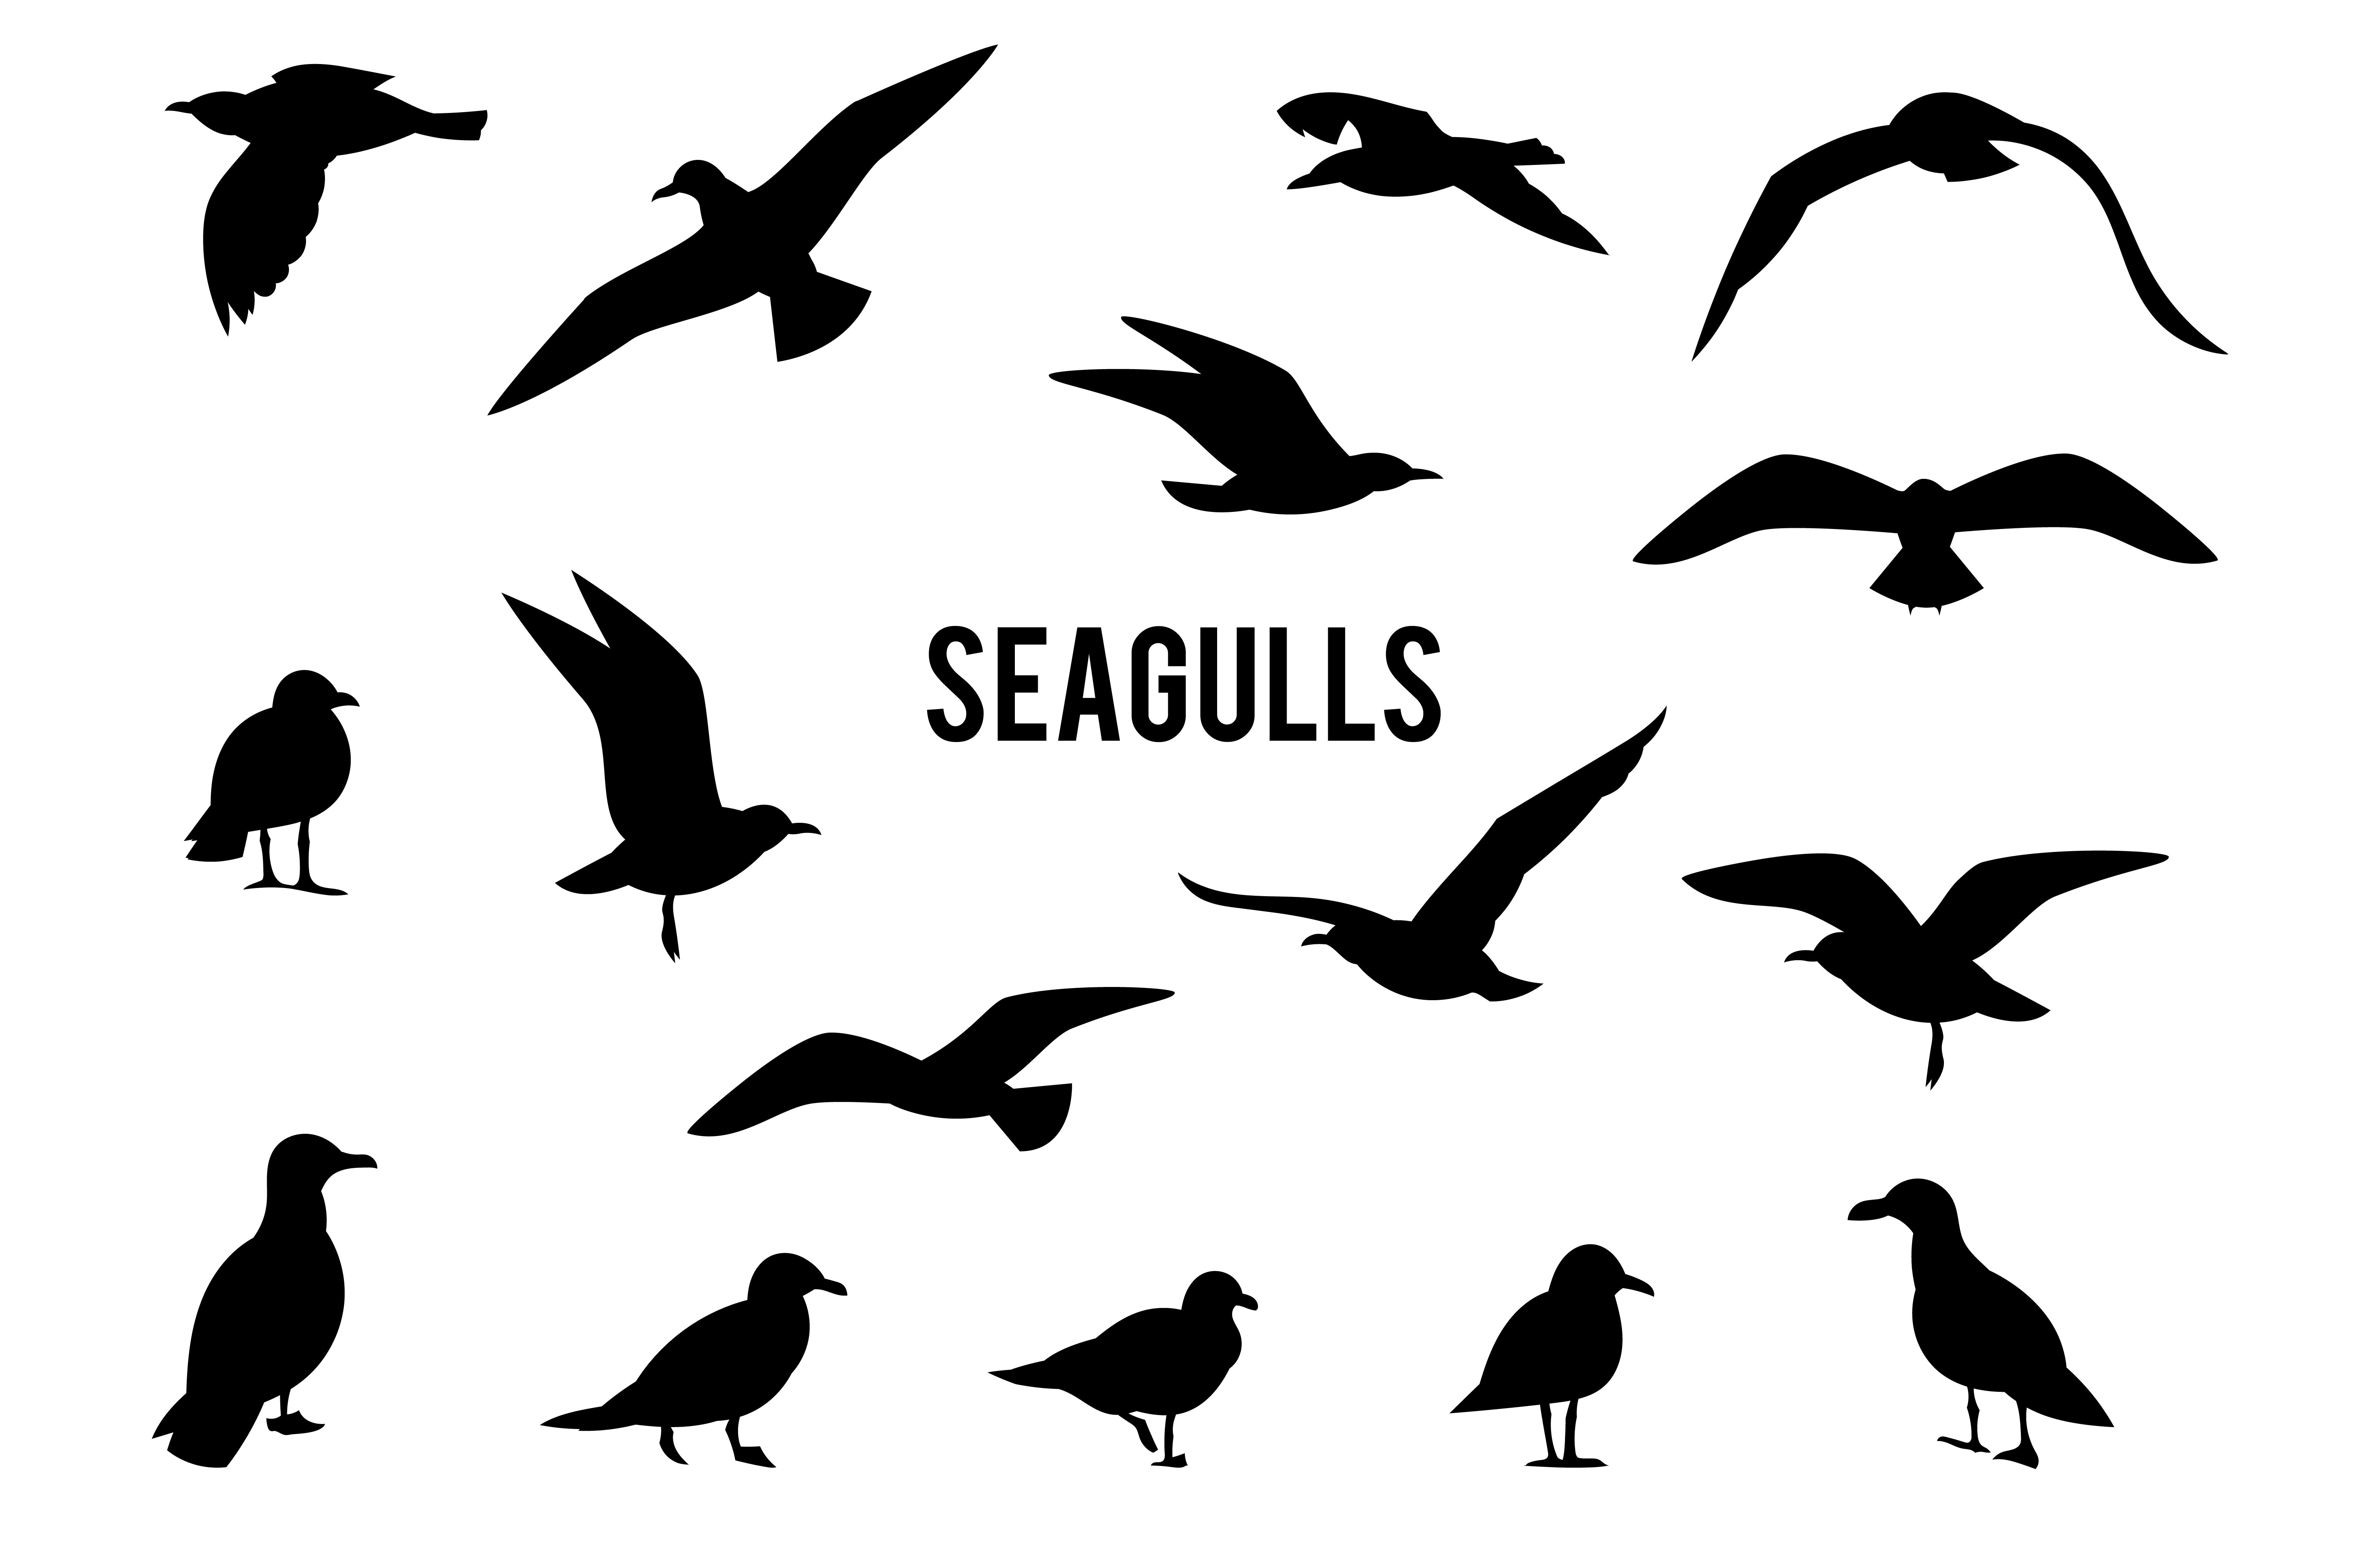 seagull silhouette fileseagullbansin2 silhouette bwsvg wikimedia commons silhouette seagull